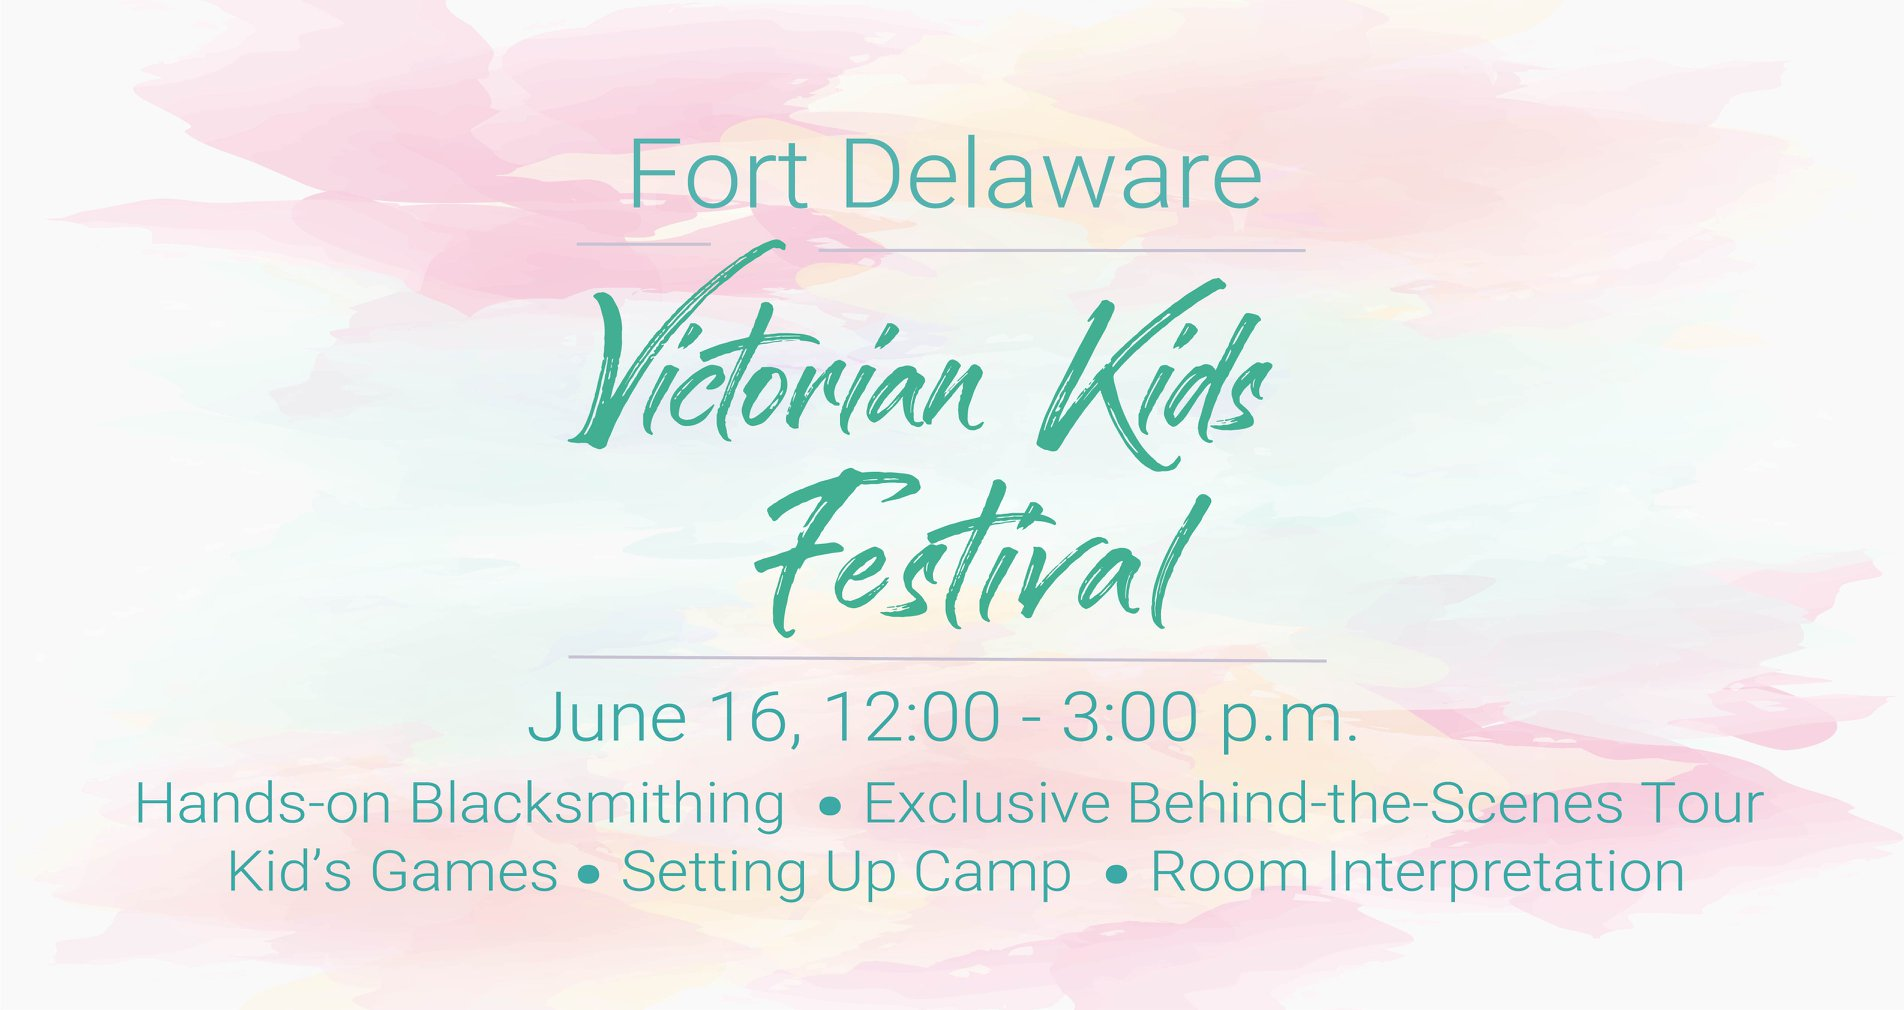 Victorian Kids Fest on June 16 at Fort Delaware State Park